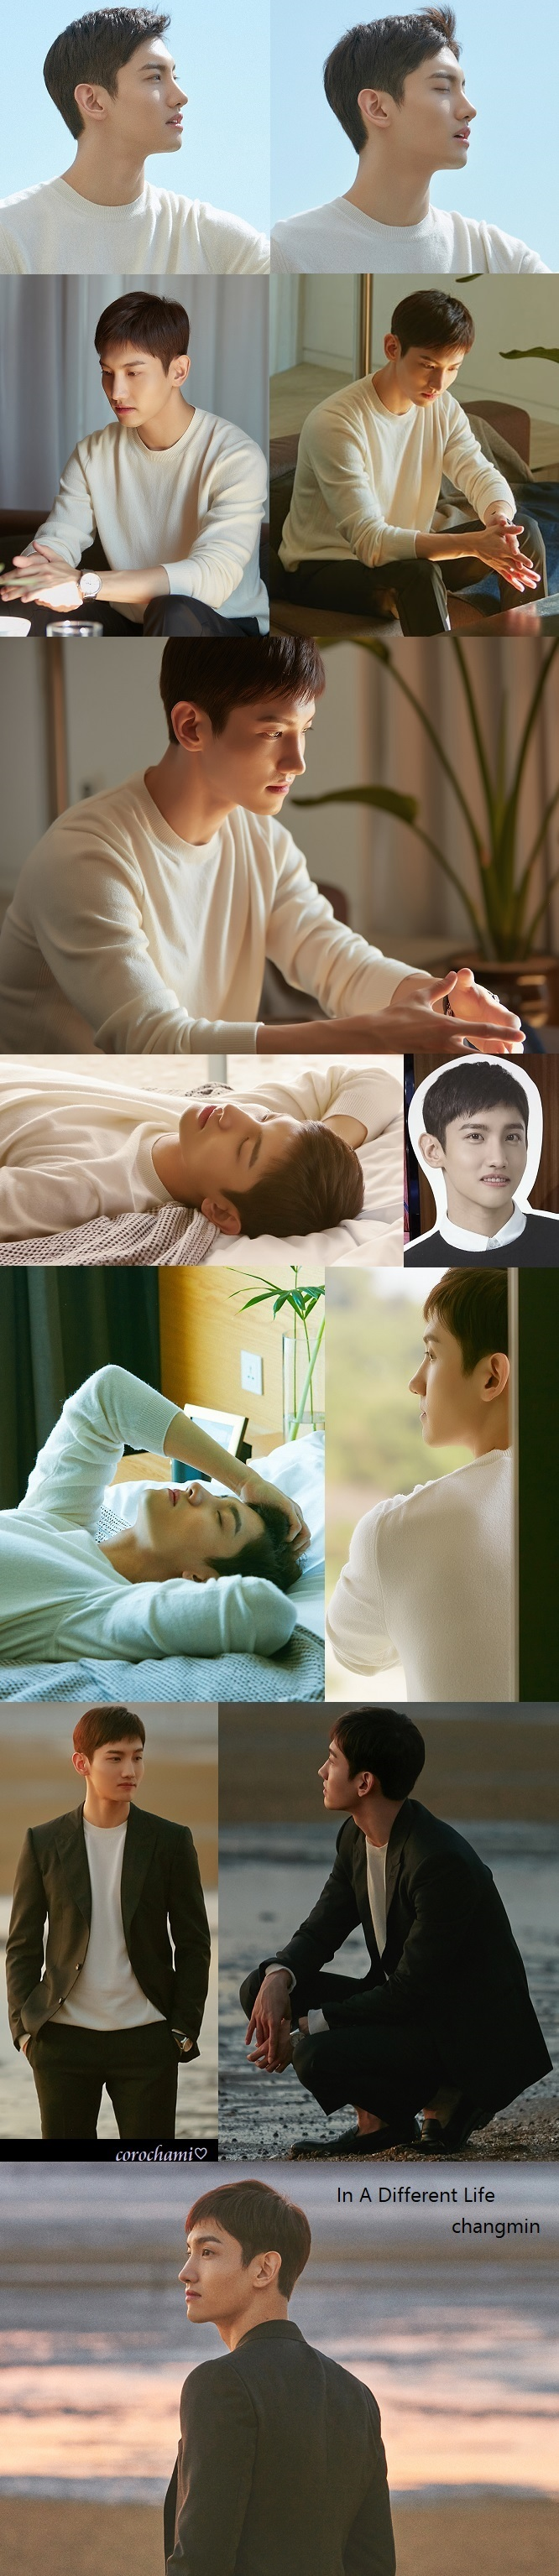 In A Different Life changmin